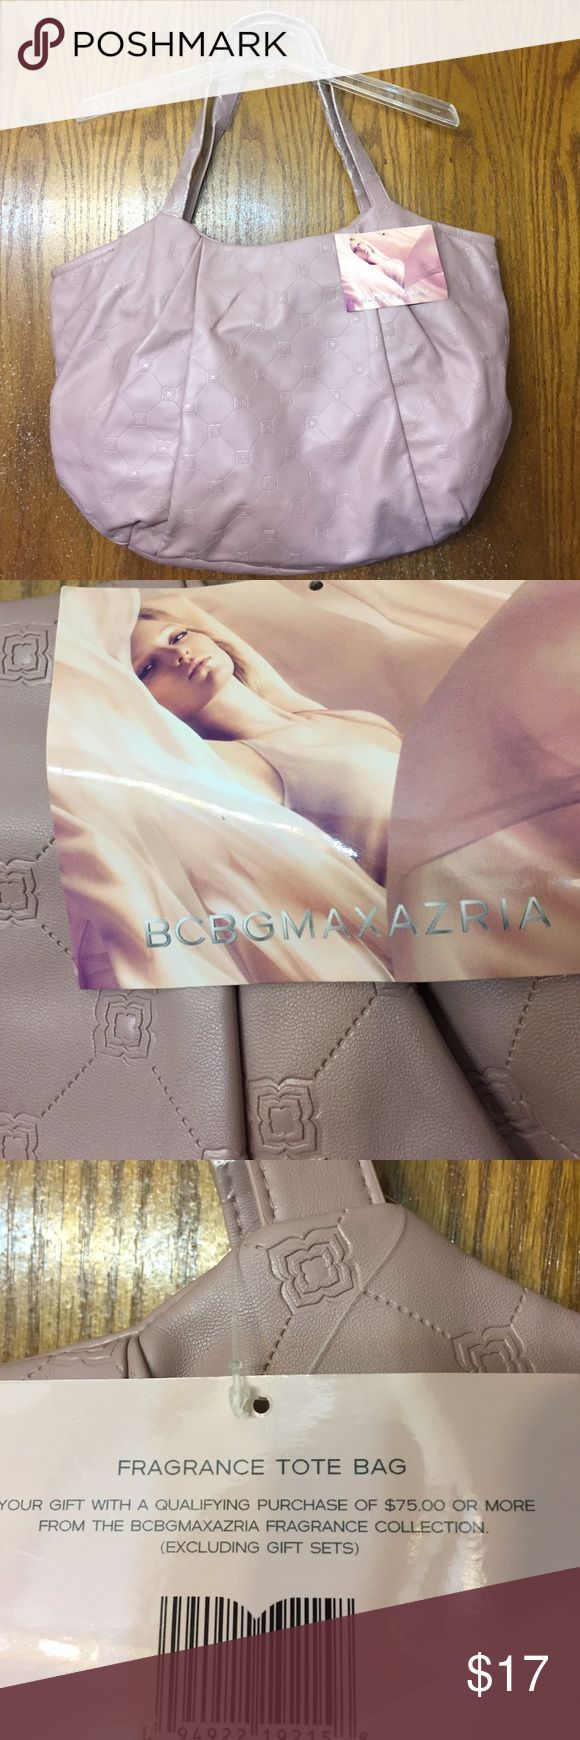 BCBGMAXAZRIA BCBG Mom extra large tote bag This bag was a free gift with a $75 or more purchase from their fragrance collection. It is Brand New with tags never used! BCBGMaxAzria Bags Totes